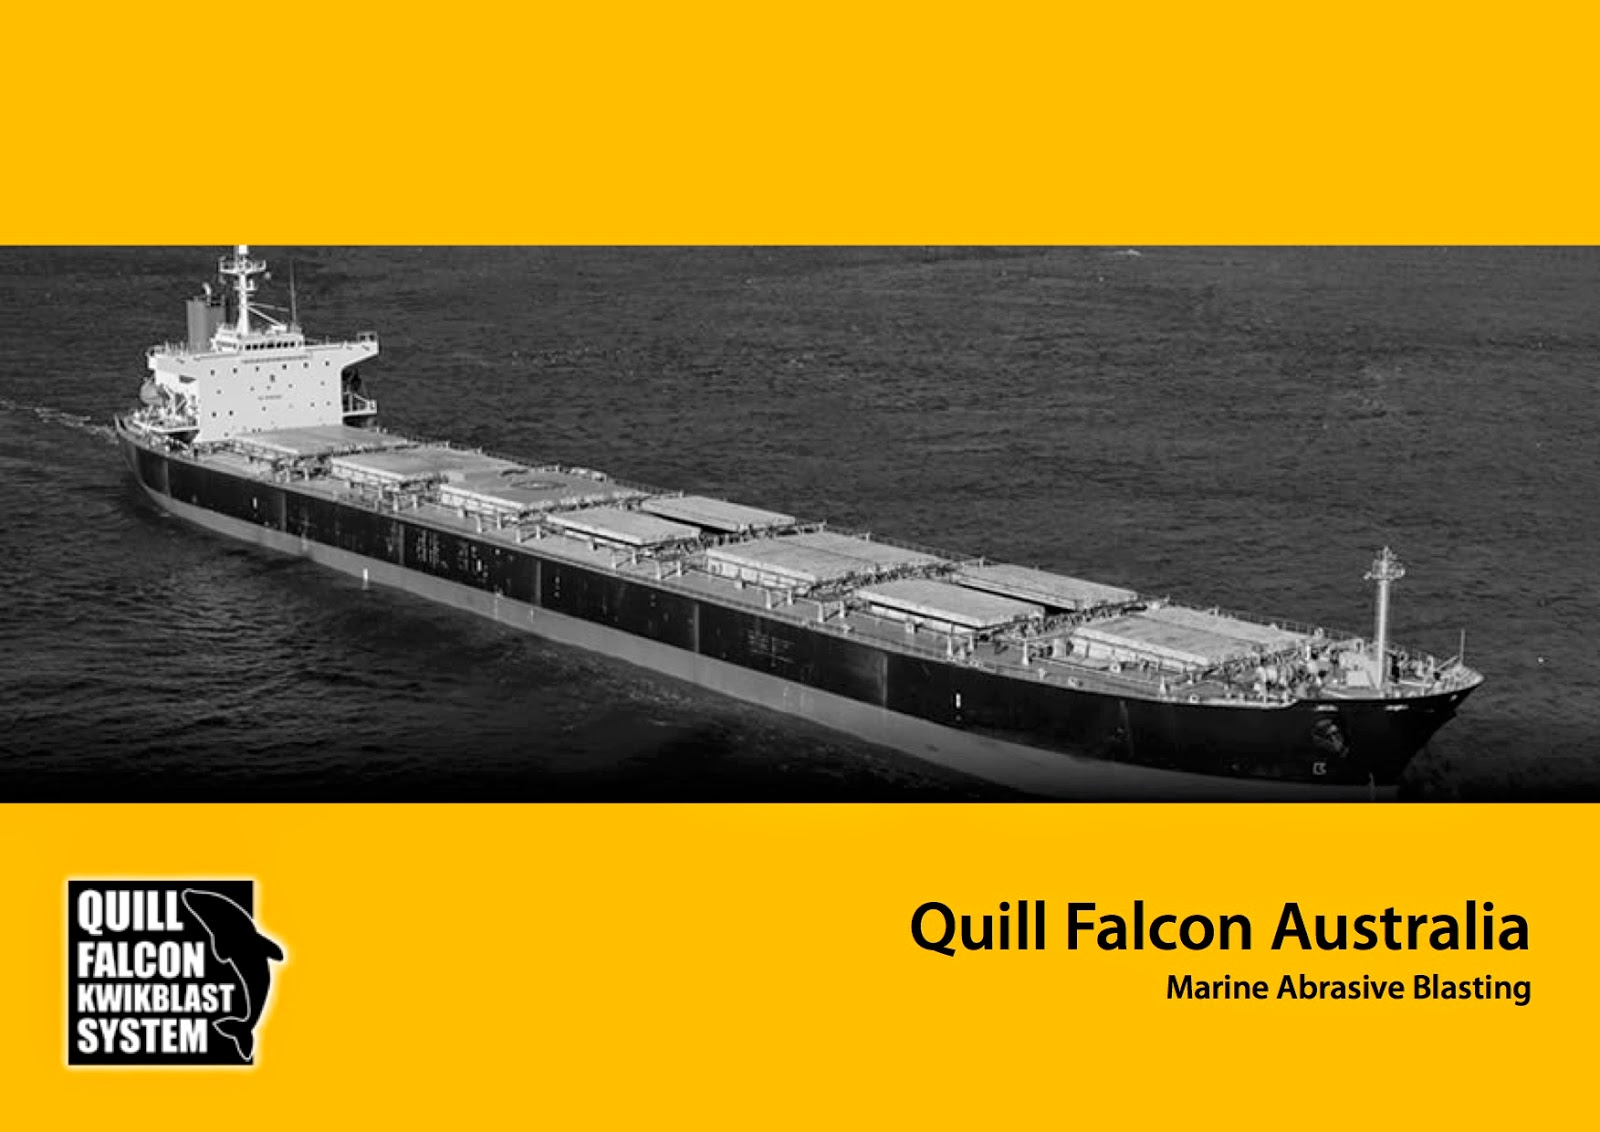 Abrasive blasting using the Quill Falcon Kwikblast® System is ideal for marine vessels